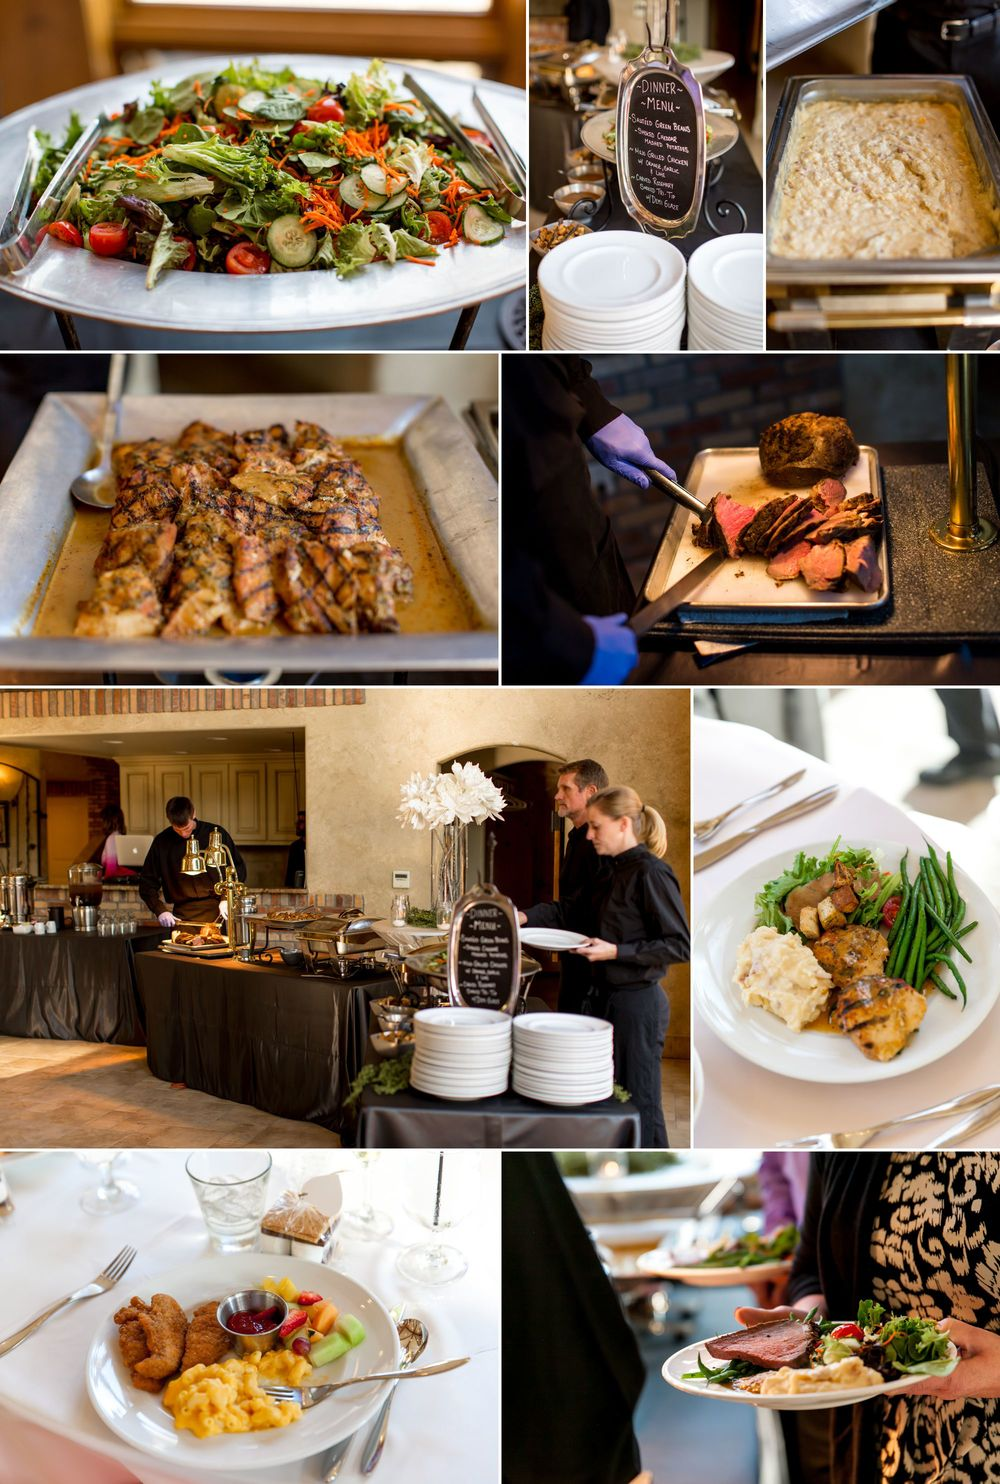 The staff at Greens Point Catering was amazing to work with and their food was incredible!